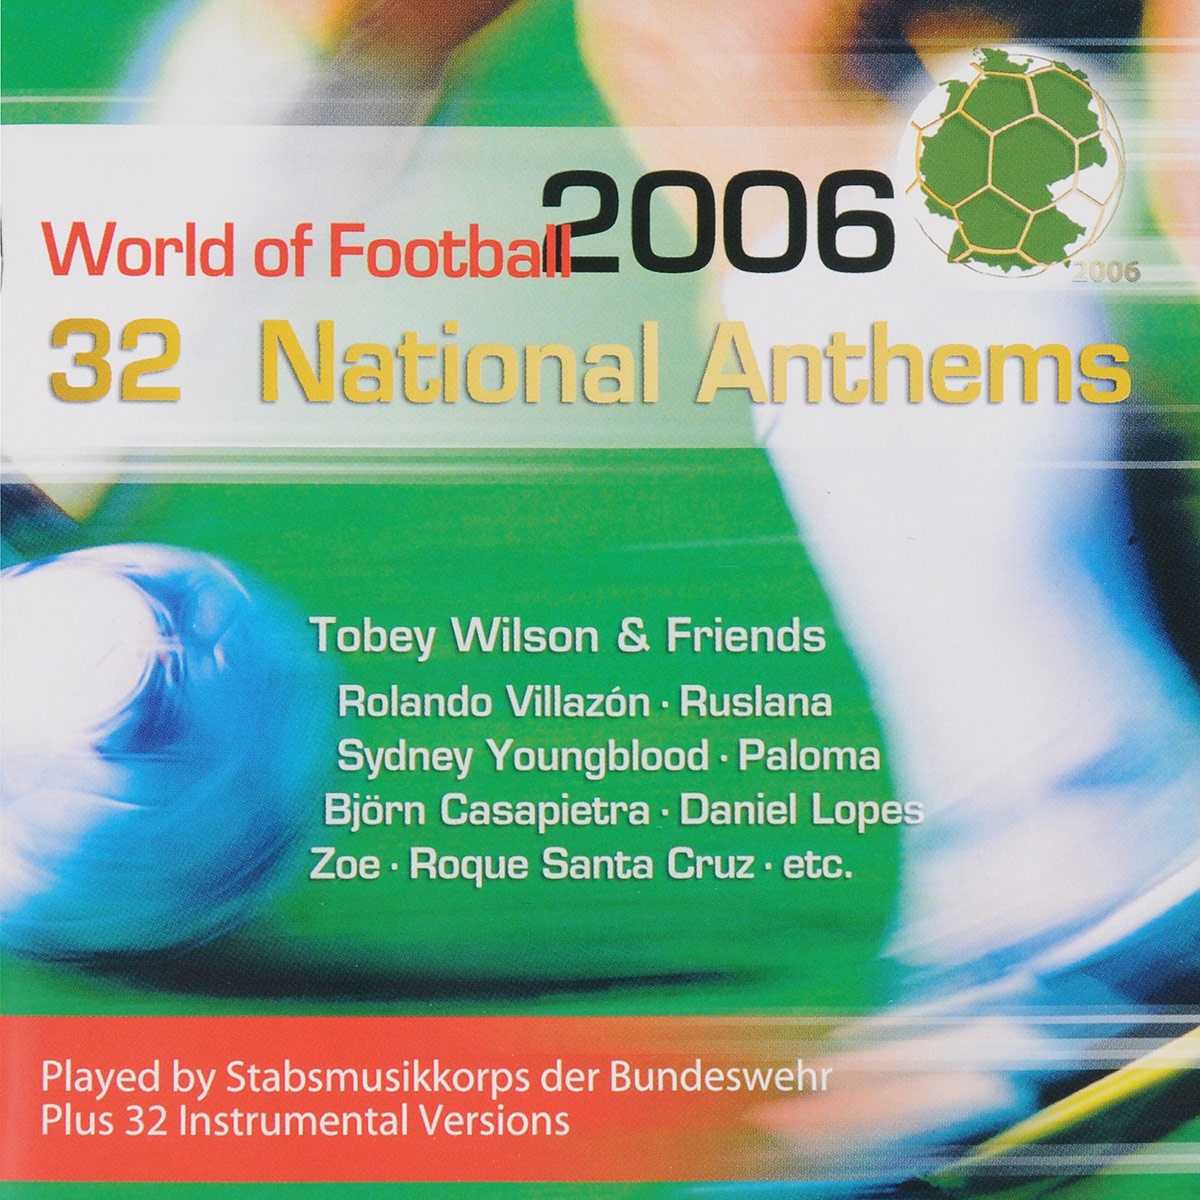 Zakazat.ru: VARIOUS ARTISTS. 32 NATIONAL ANTHEMS - WORLD CUP 2006